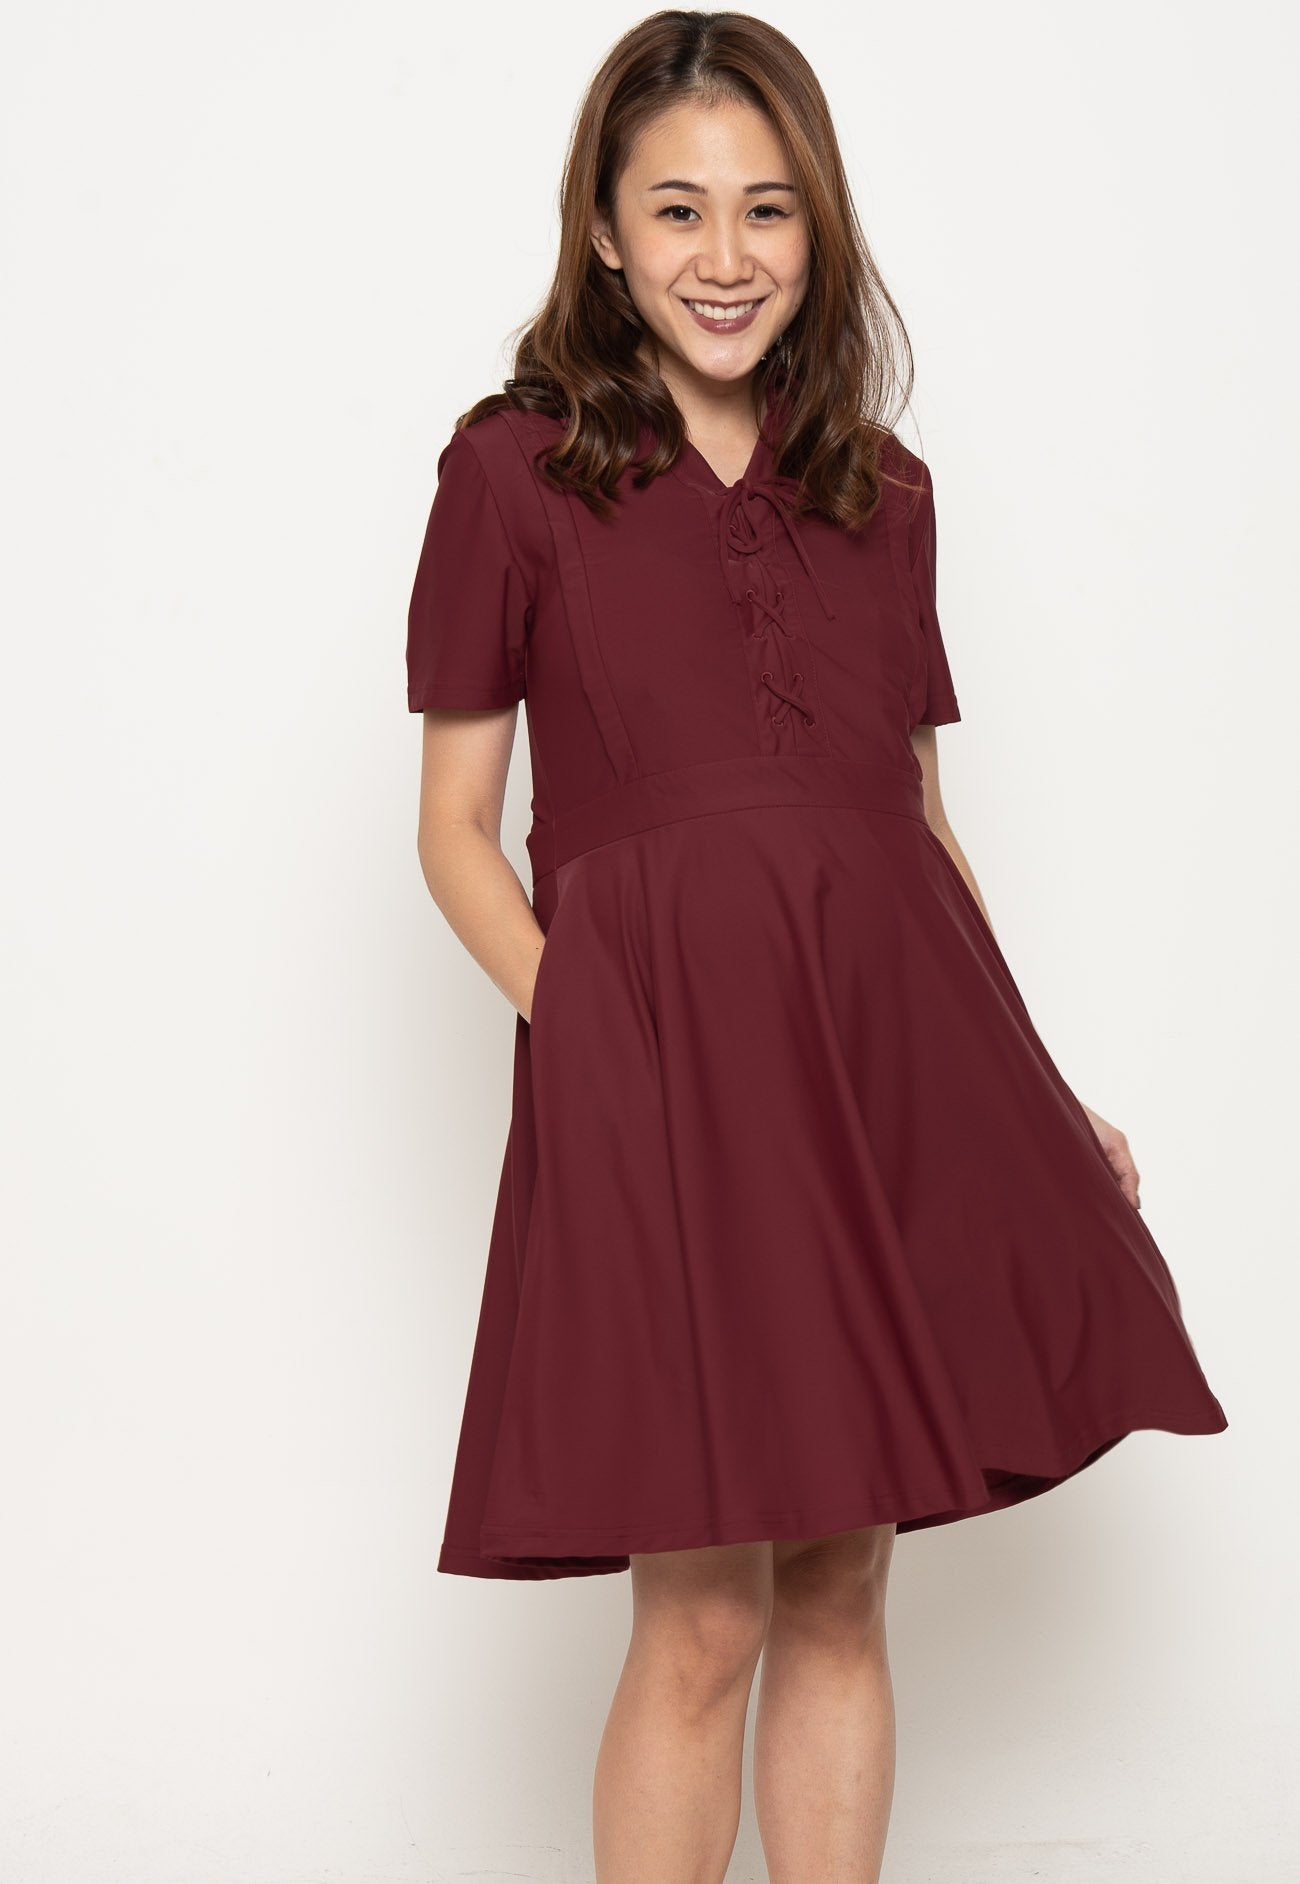 Crisscross Lace Nursing Dress in Red  by Jump Eat Cry - Maternity and nursing wear